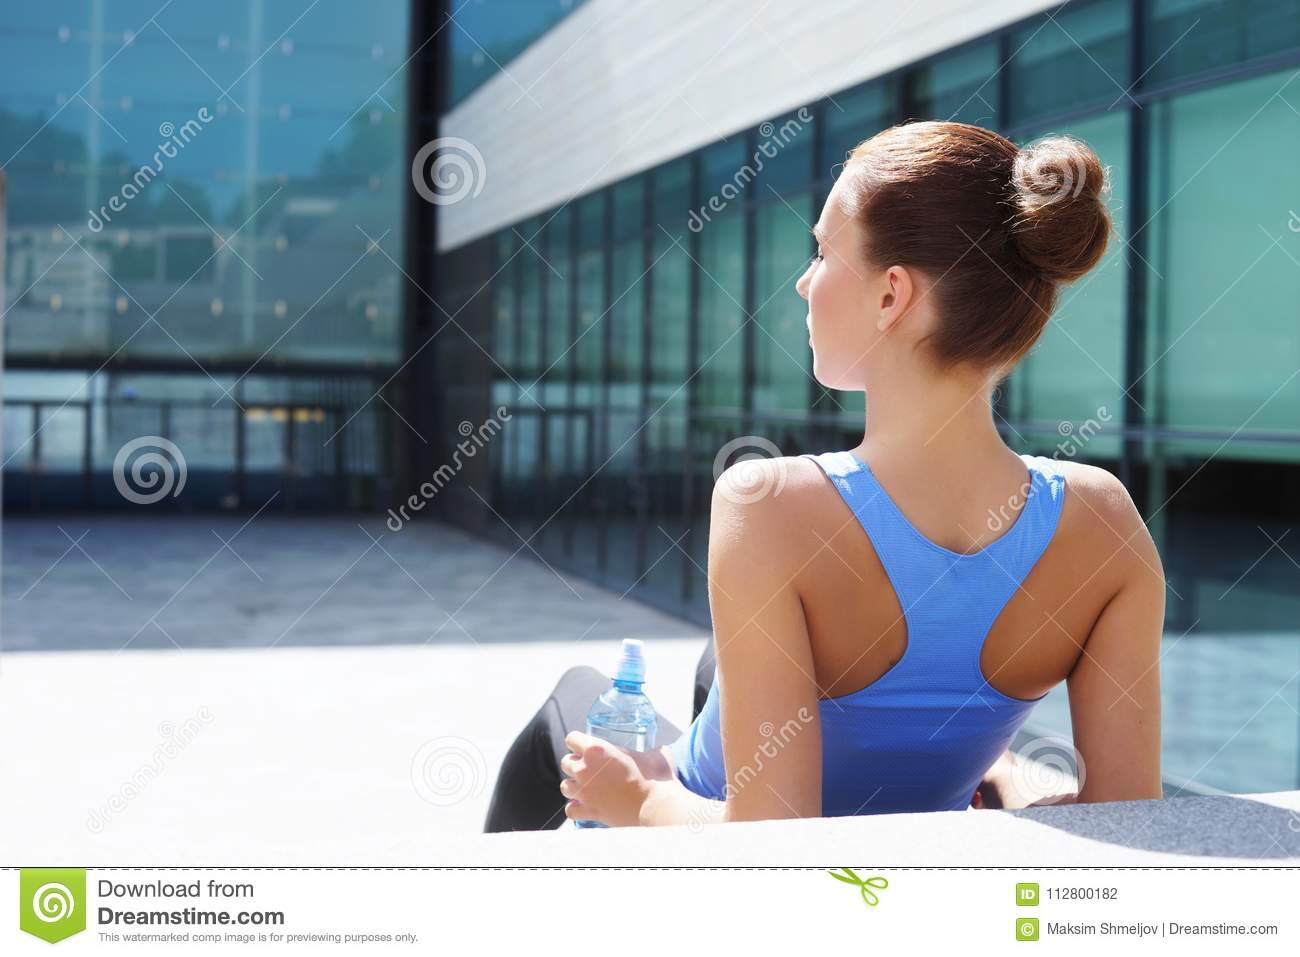 Young, fit and sporty girl preparing for urban jogging. Fitness, sport and healthy lifestyle concept.